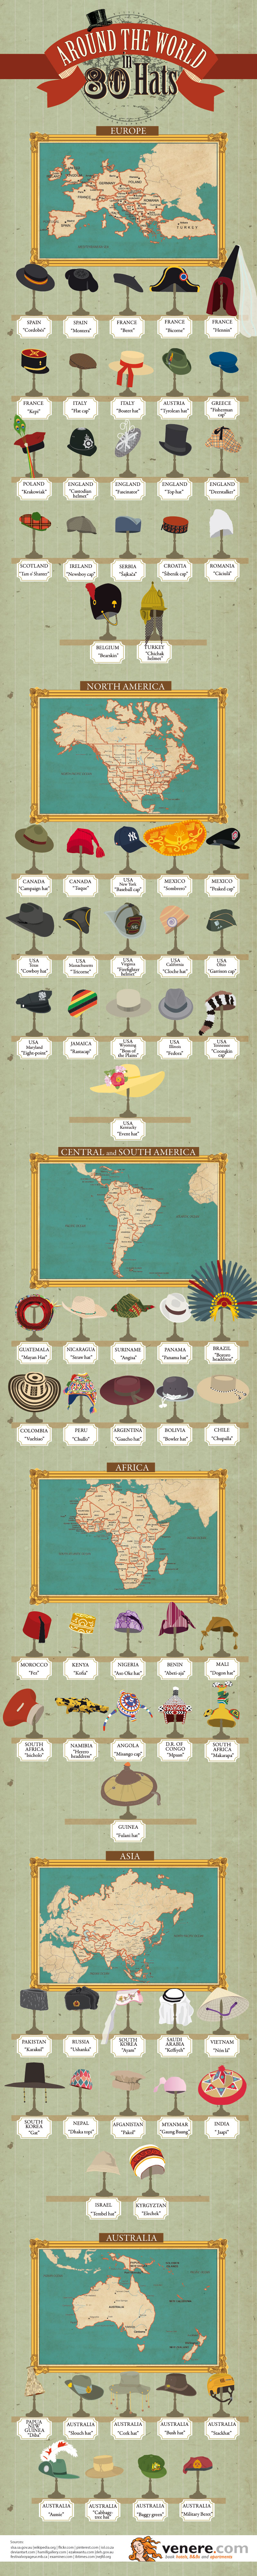 infographic-around-the-world-in-80-hats